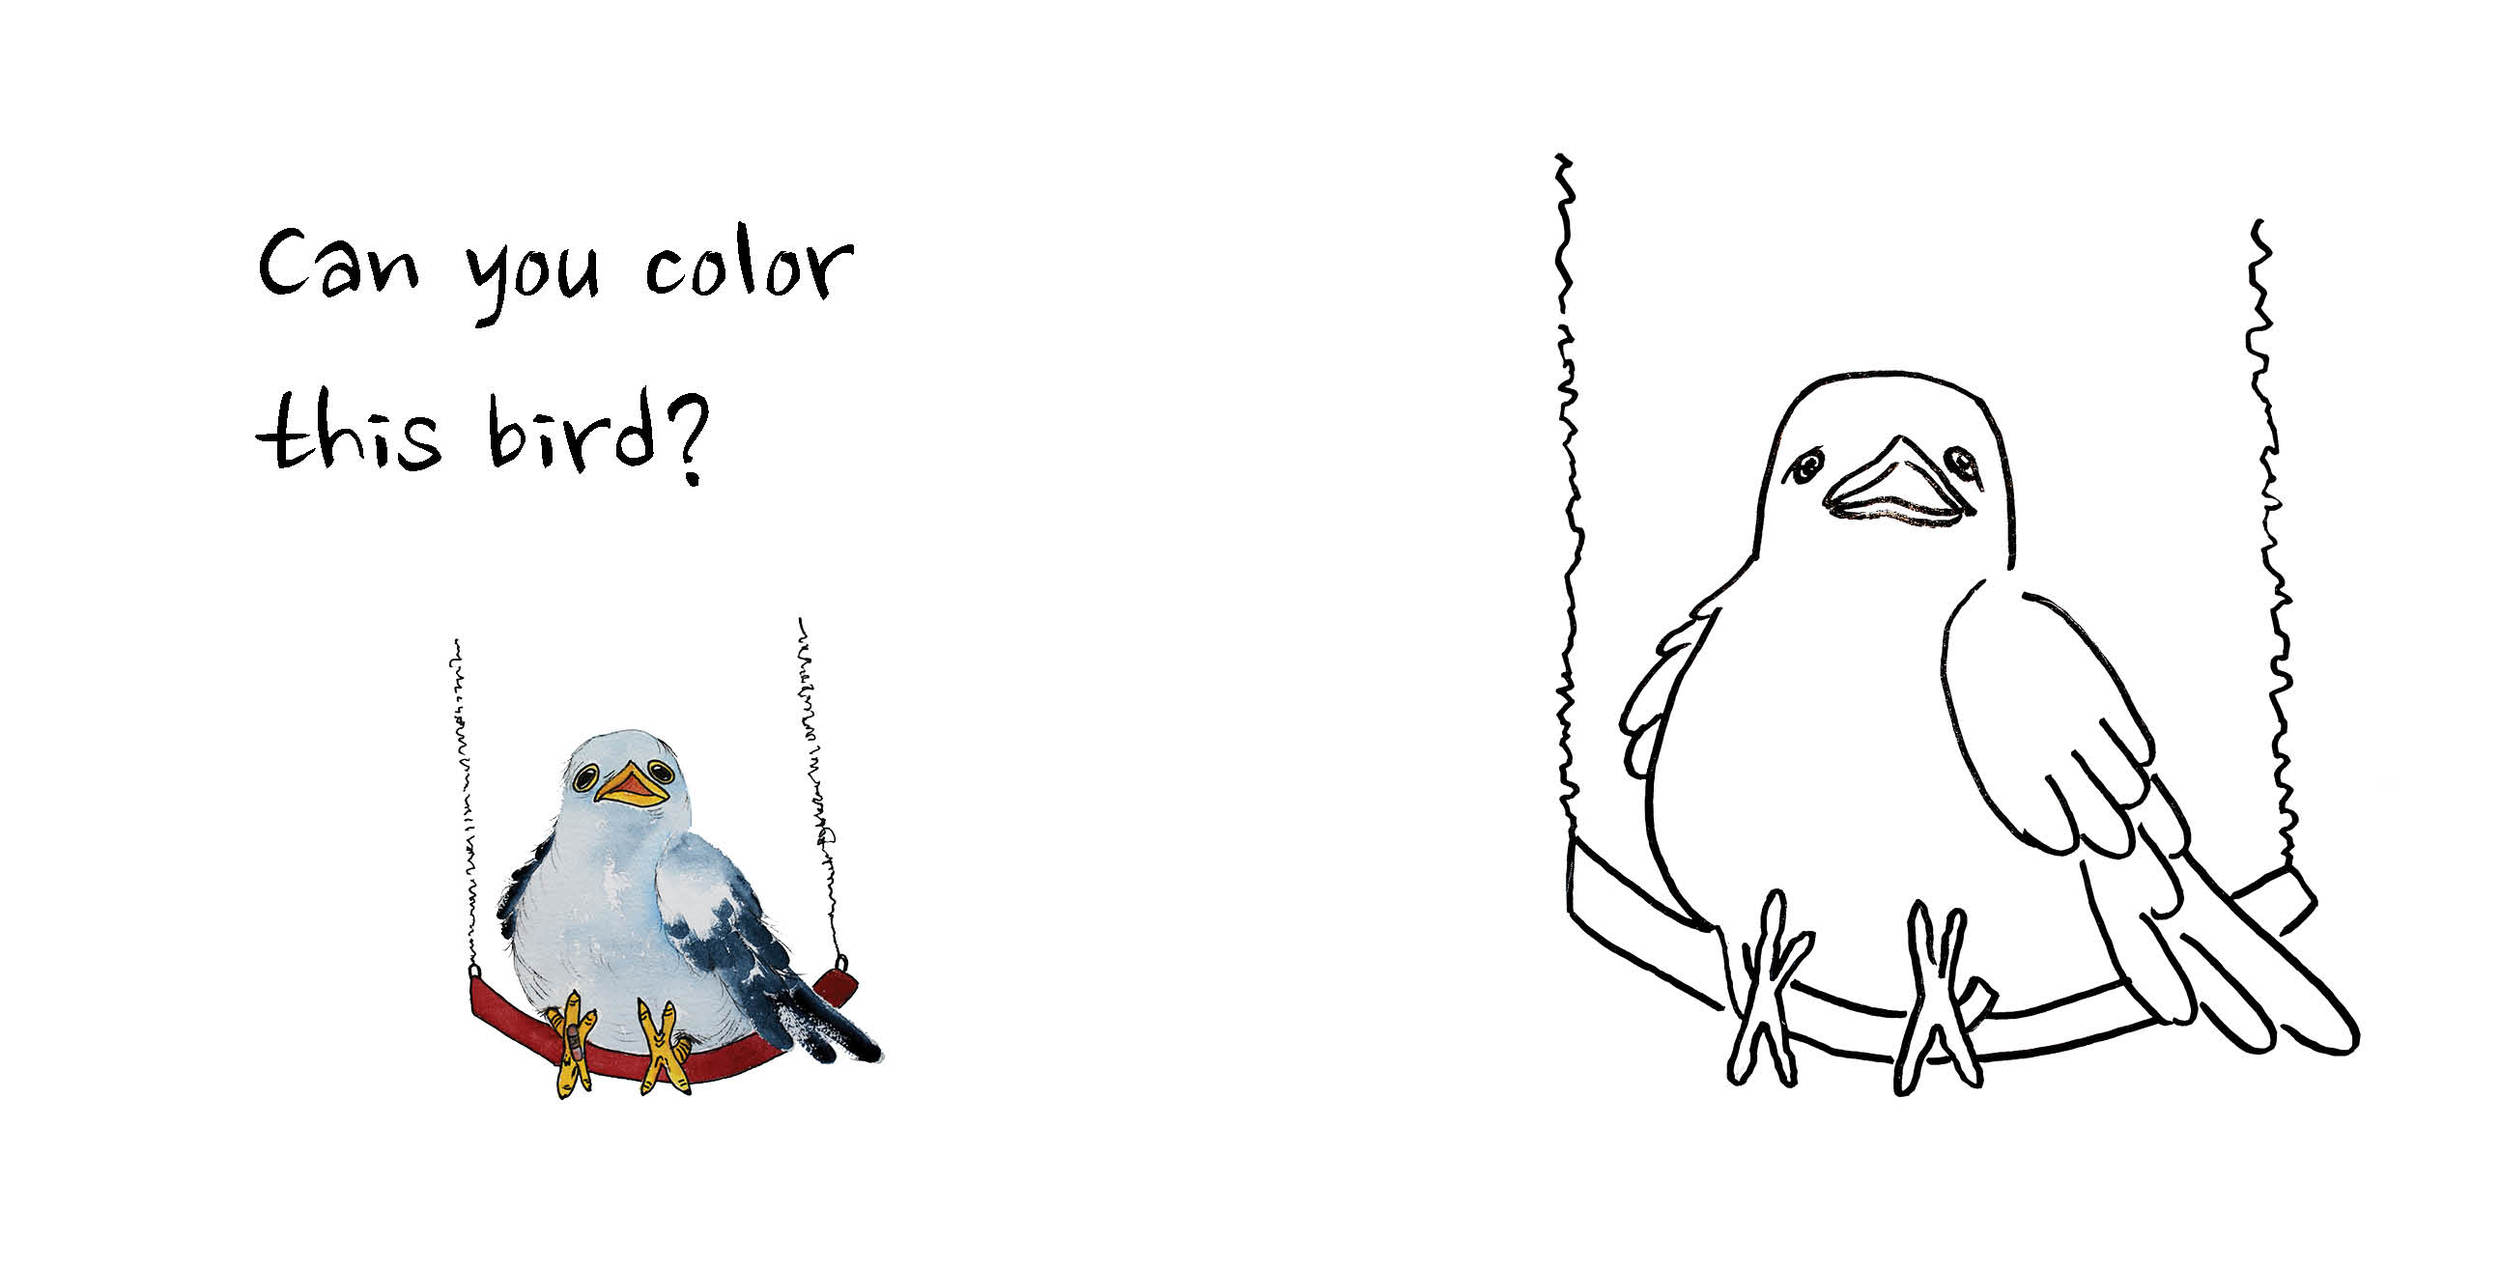 If You Were a Bird 3 pages18.jpg